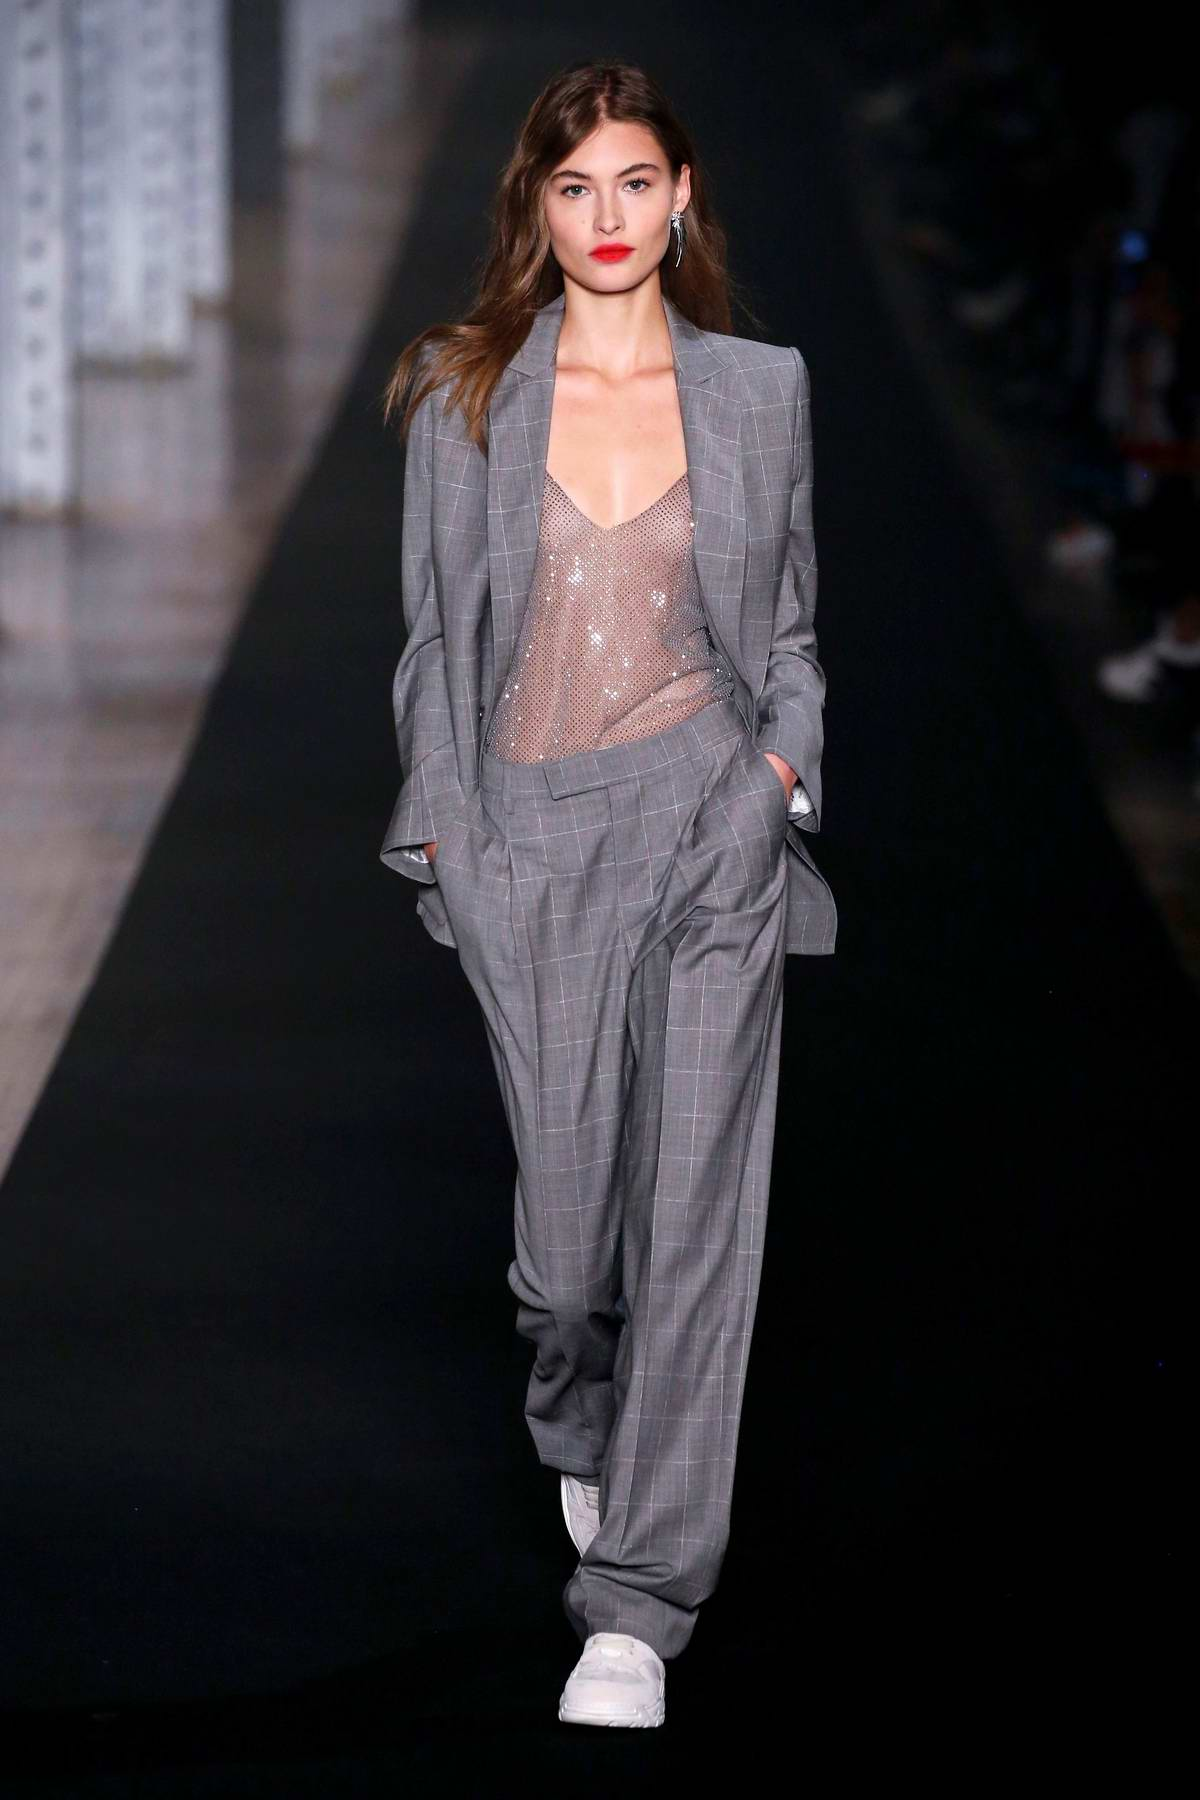 Grace Elizabeth walks the runway at the Zadig & Voltaire fashion show during New York Fashion Week in New York City